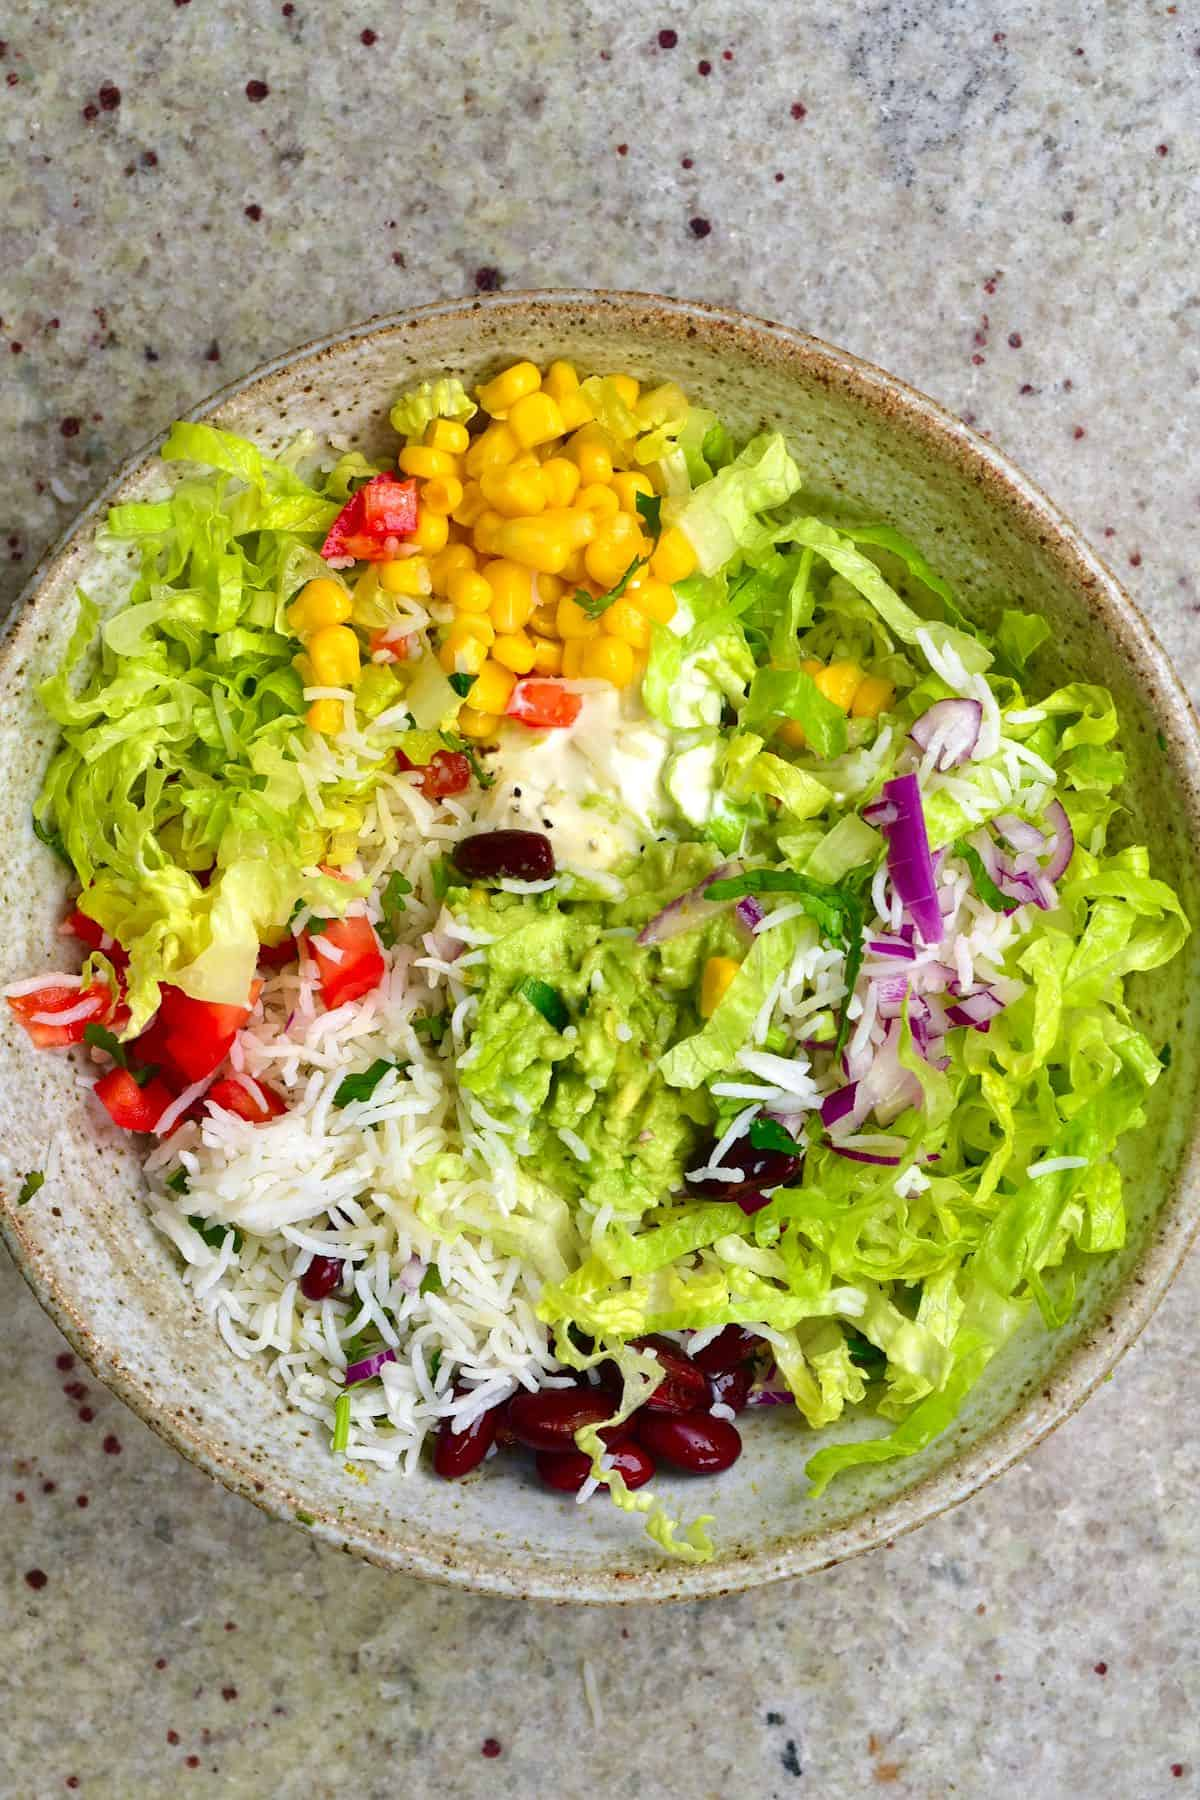 A veggie burrito bowl filled with rice, lettuce, corn and other veggies